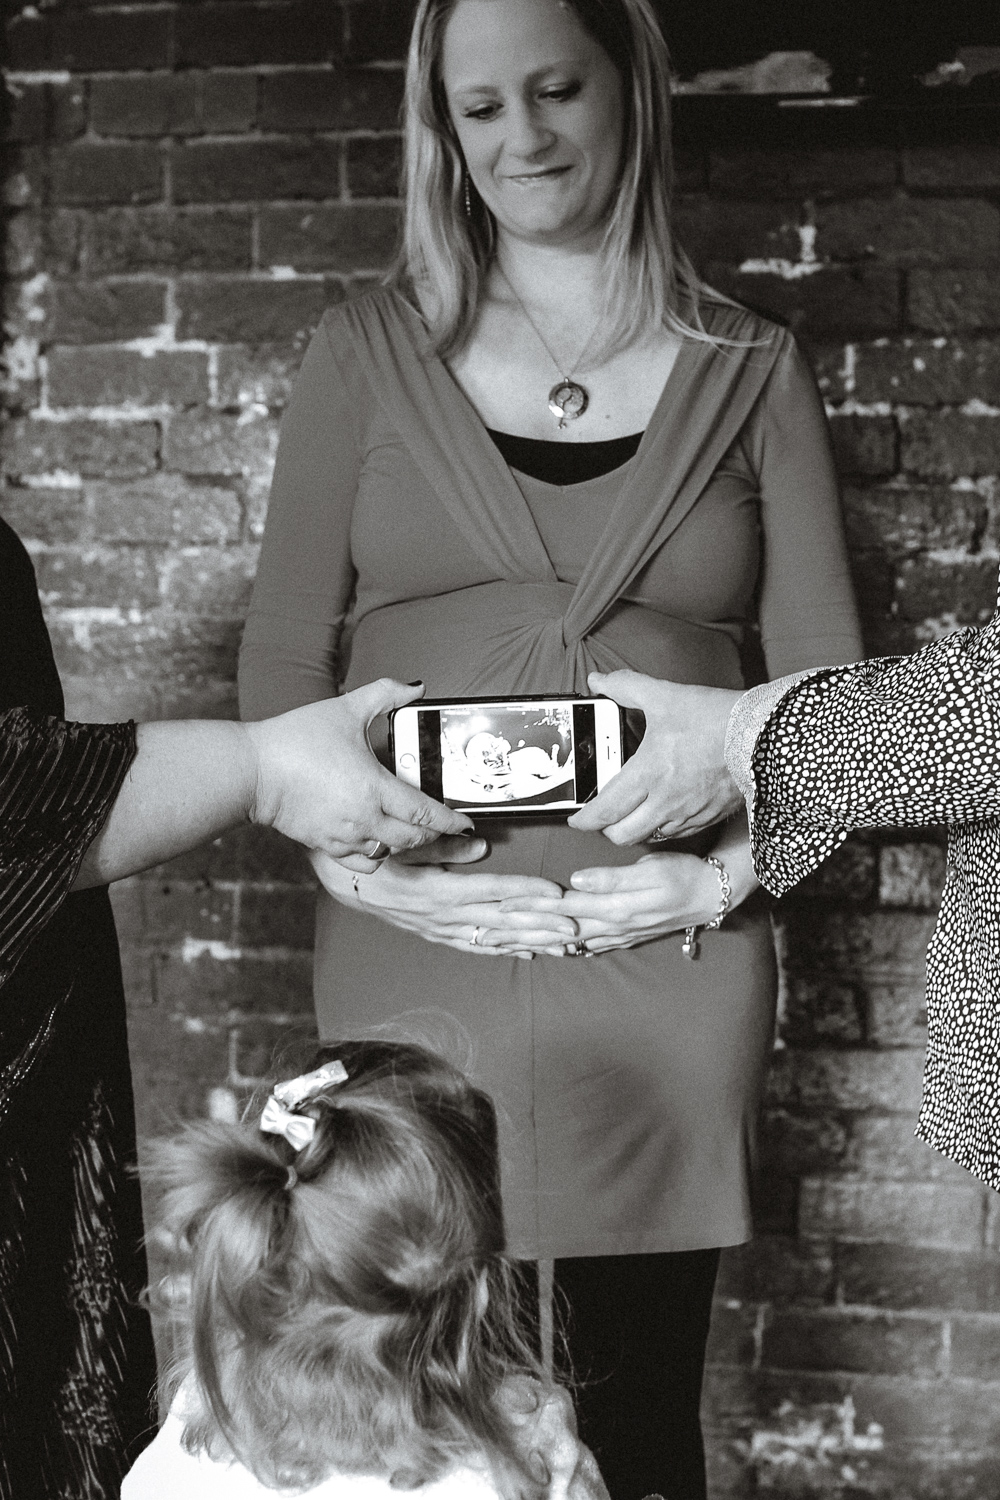 surrogate and daughter, intended parents sharing scan at maternity session